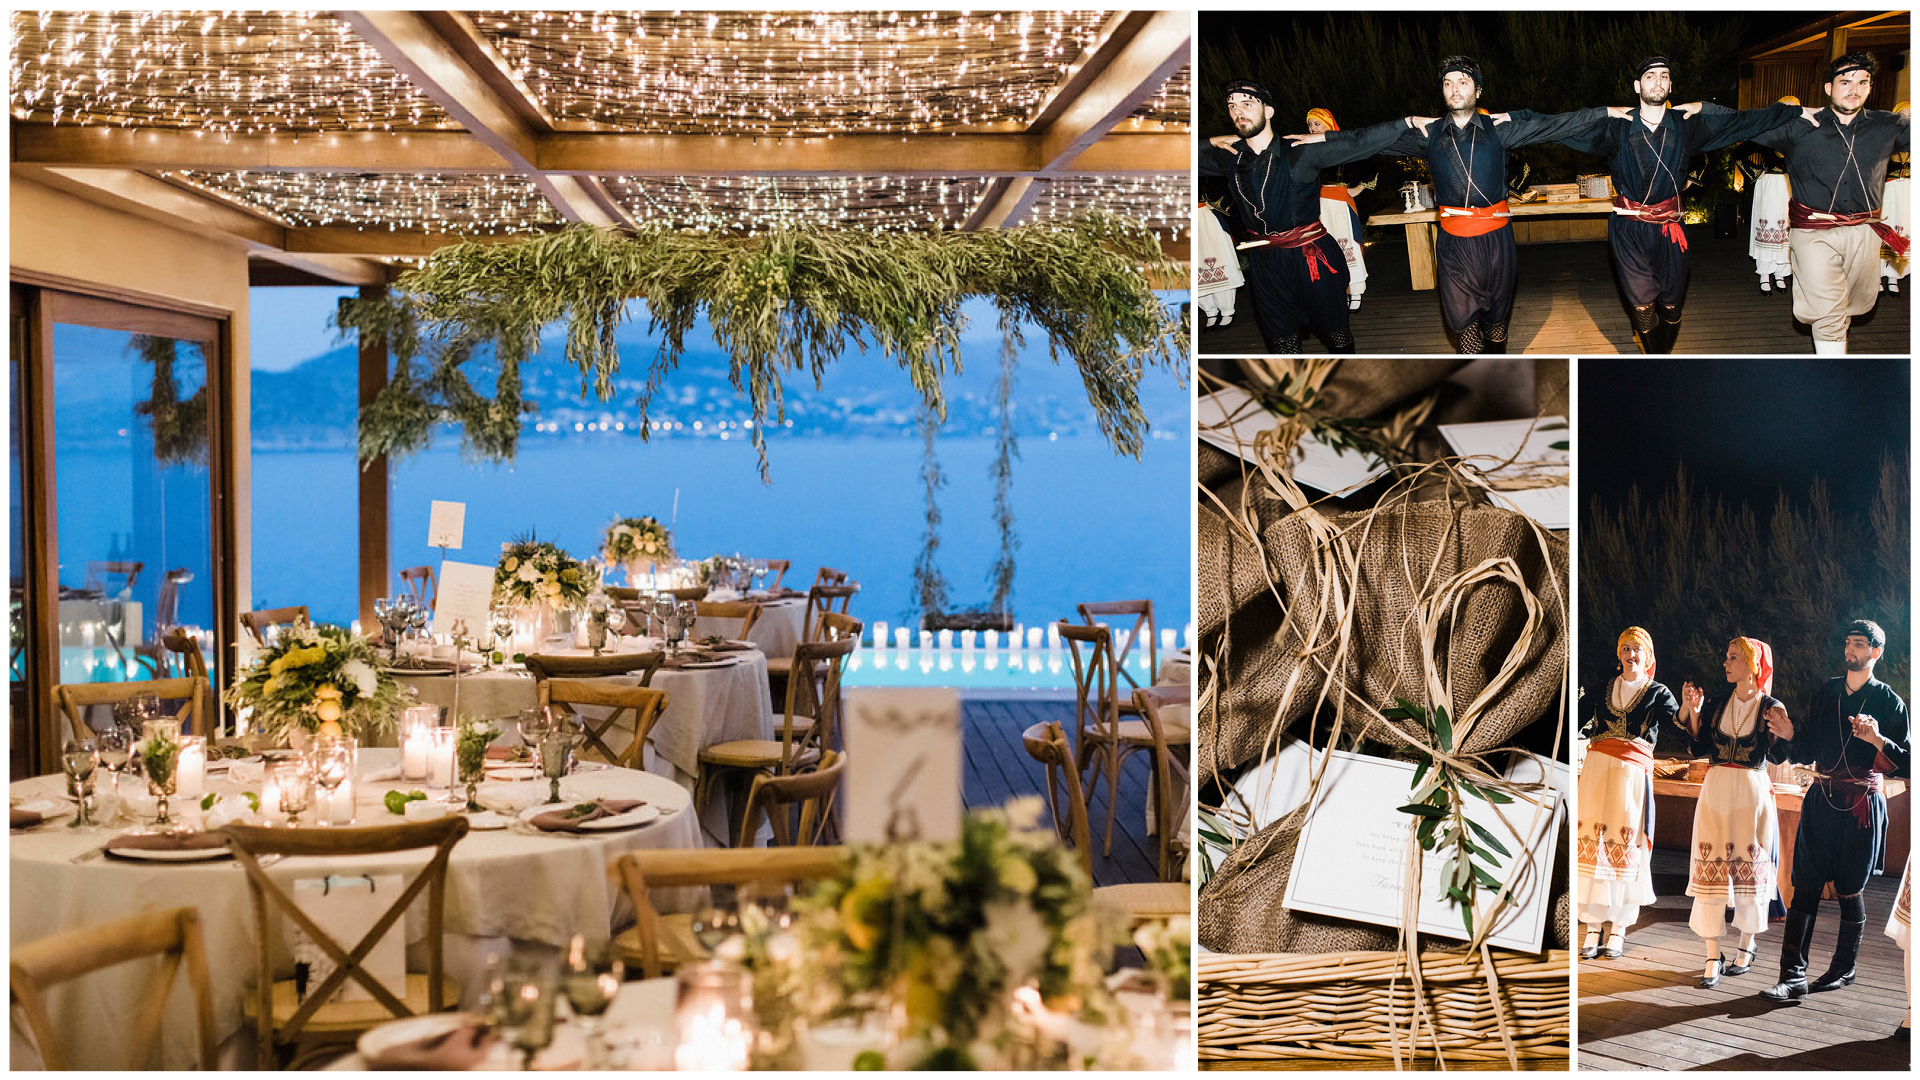 Whimsical olive themed wedding in the Athenian Riviera | MBW Events